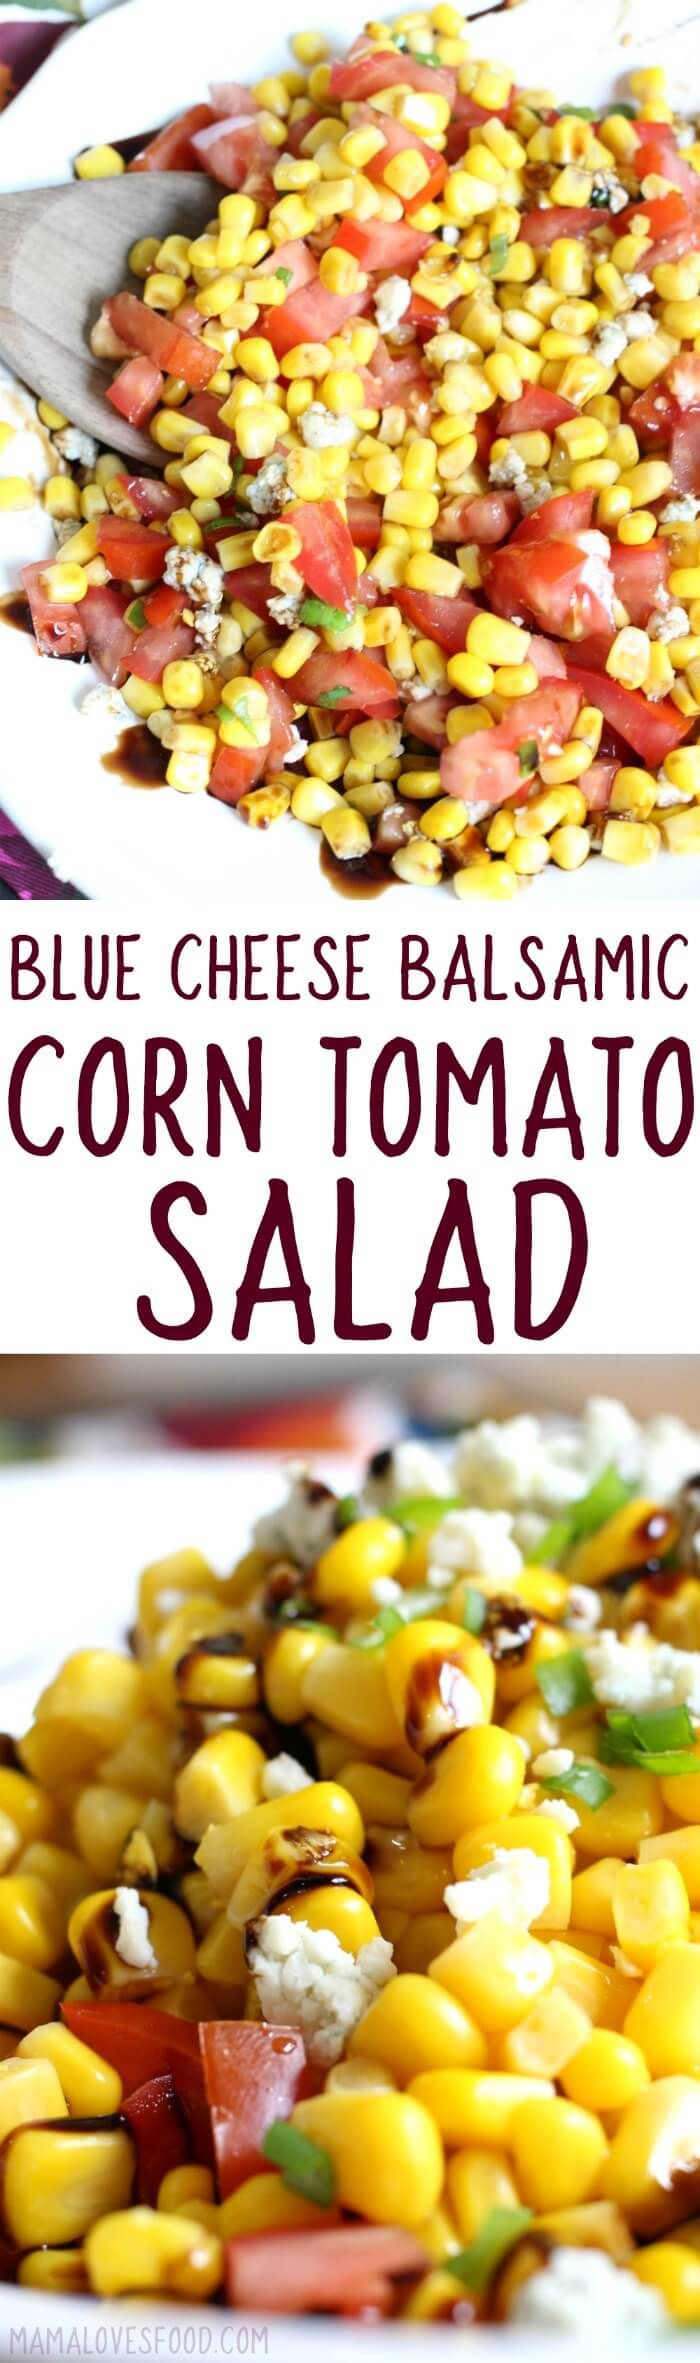 made this for a BBQ and everyone wanted the recipe! Corn & Tomato Salad with Blue Cheese